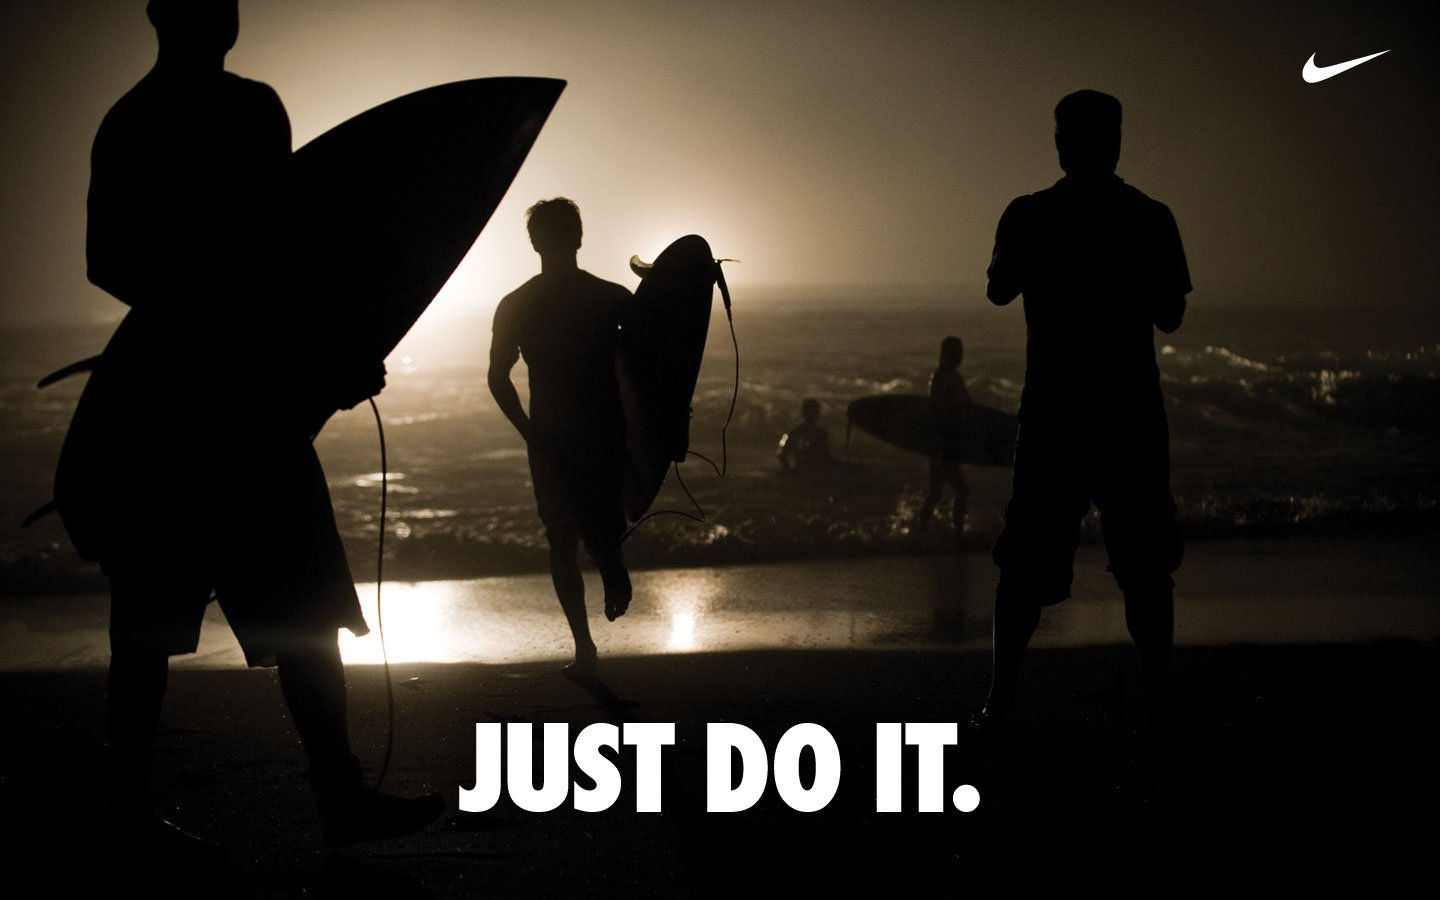 advertising nike just do it